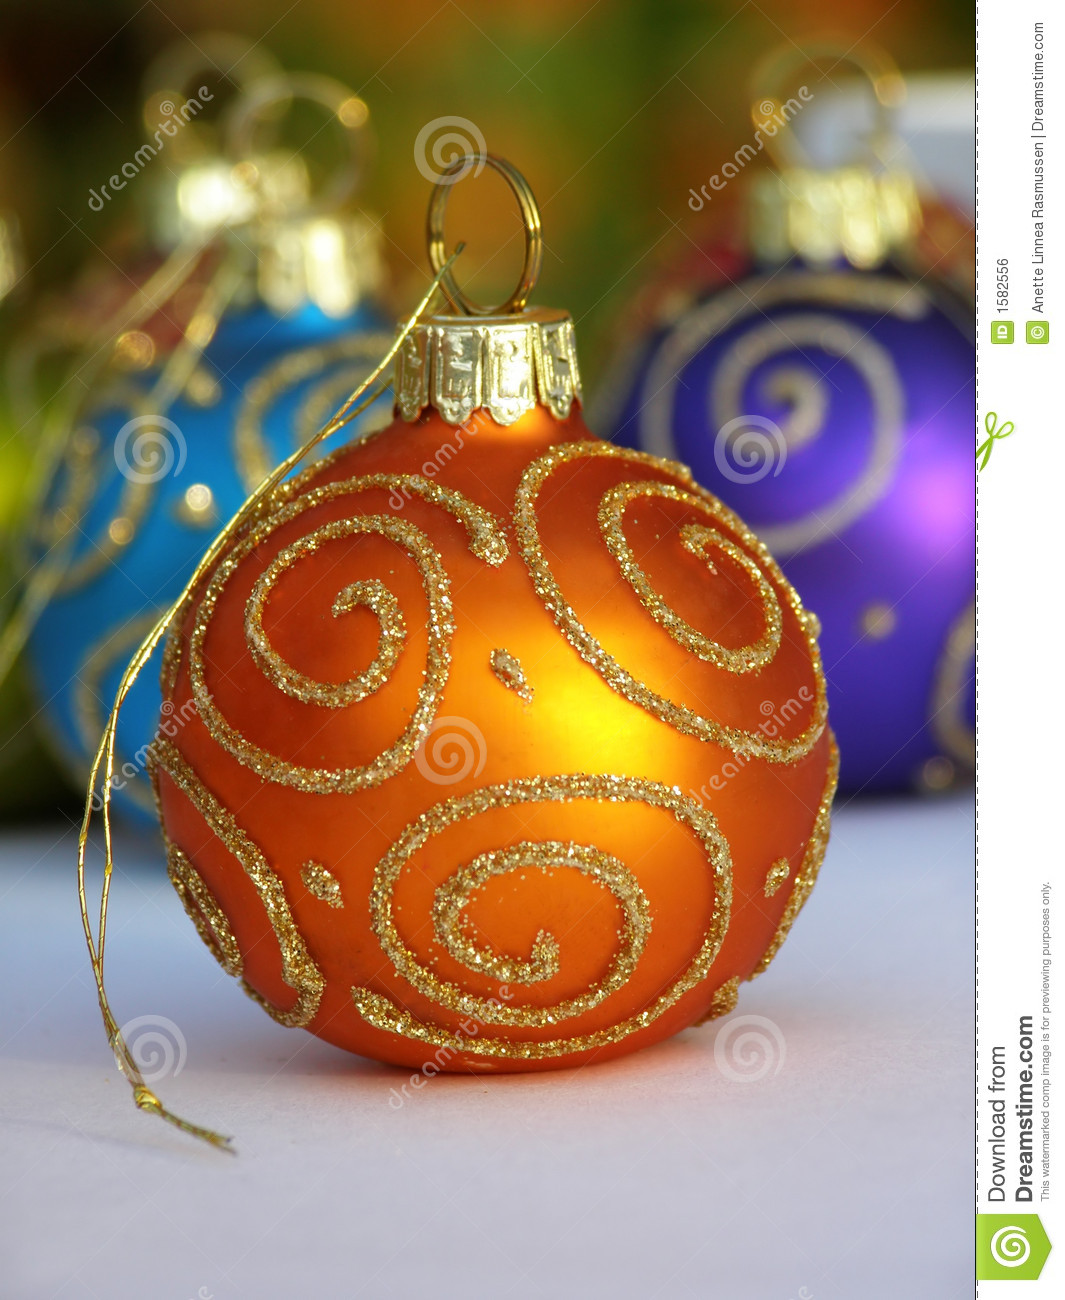 Orange And Blue Christmas Lights